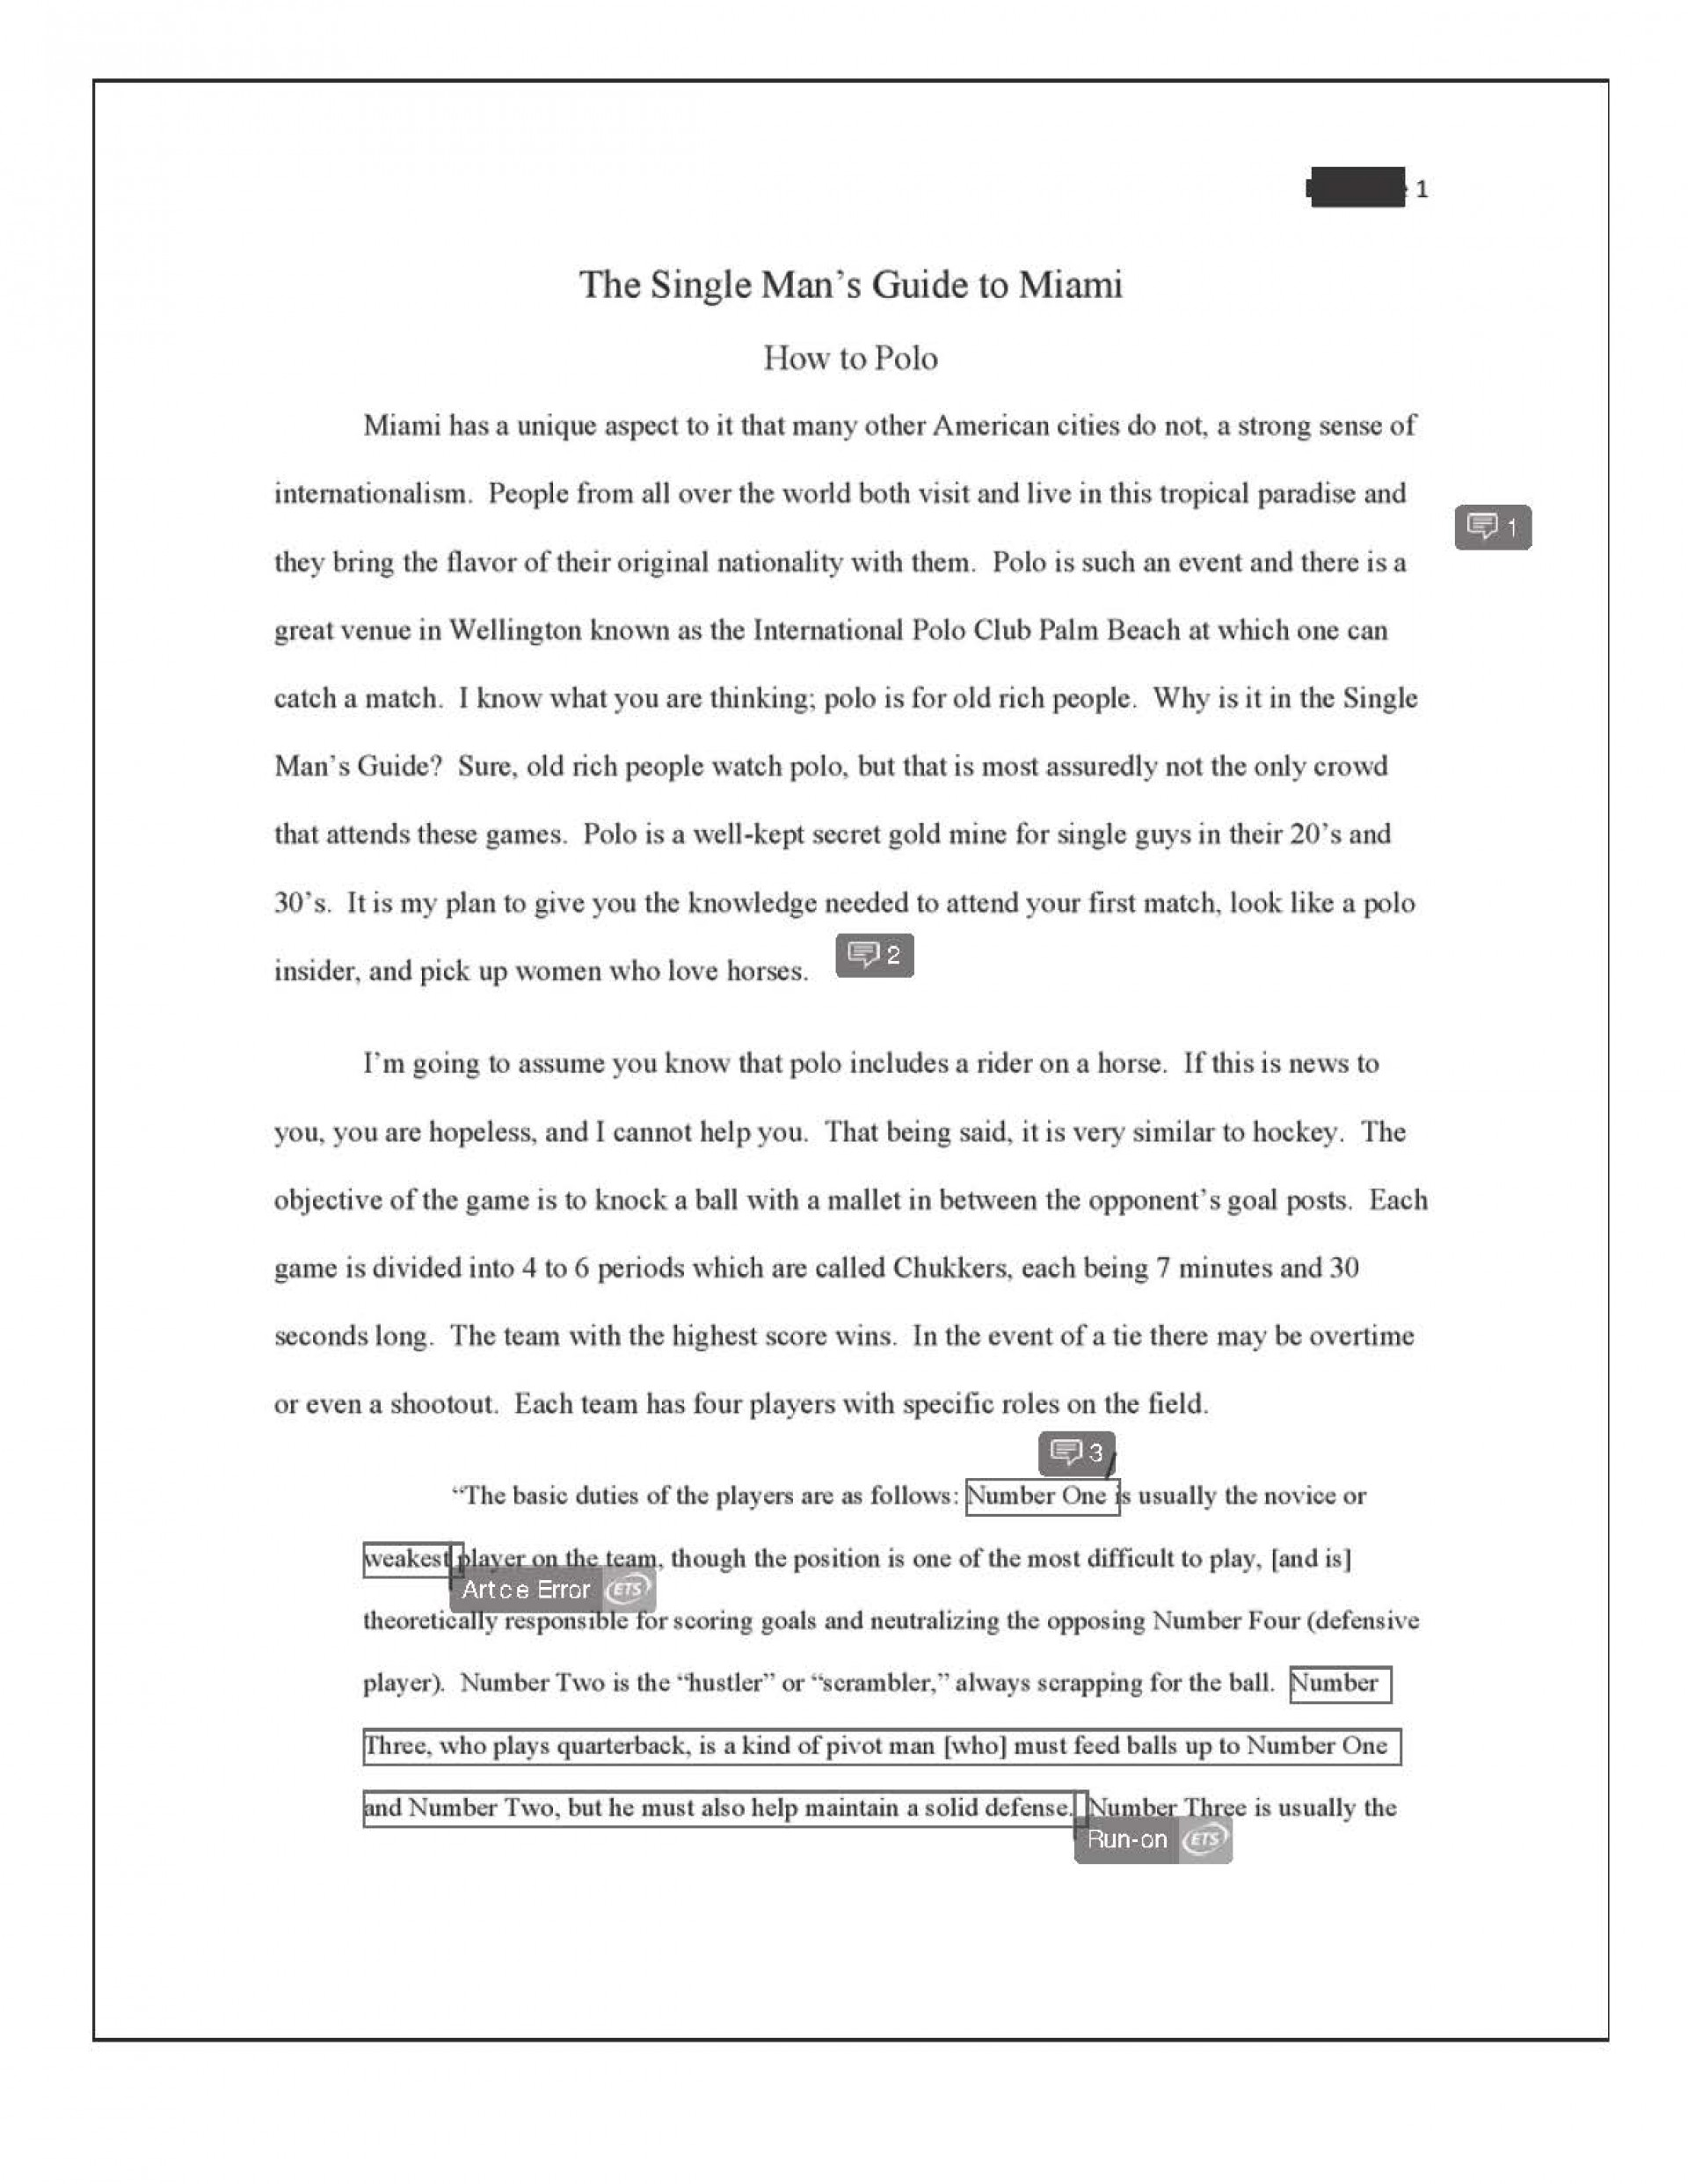 024 Interview Essays Free Informative Essay Final How To Polo Redacted Page 2 Formidable Examples Sample 1920